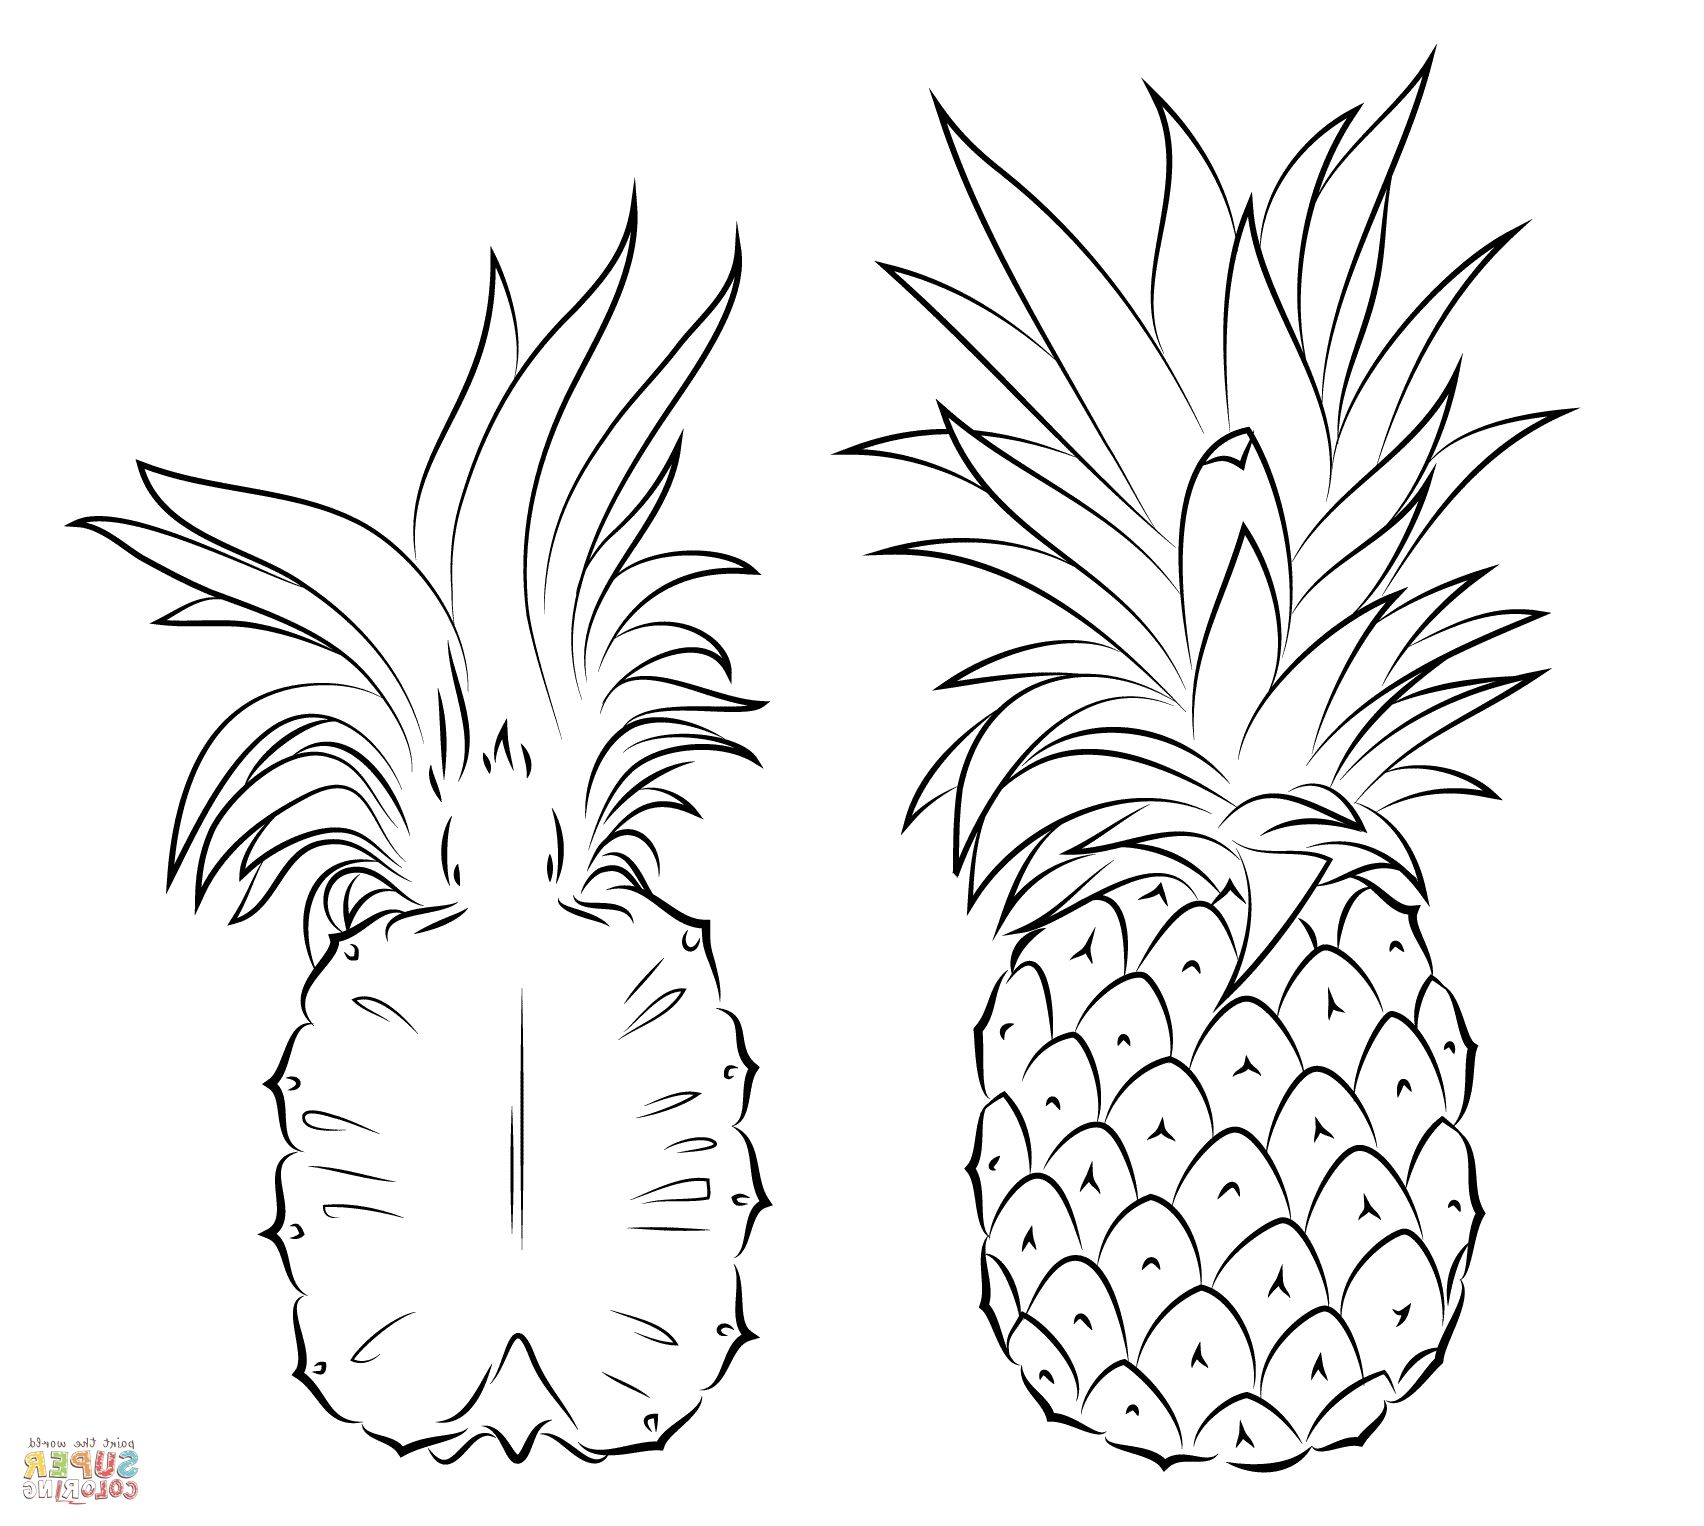 Image Result For Pineapple Coloring Page Pineapple Drawing Pineapple Art Pineapple Tattoo